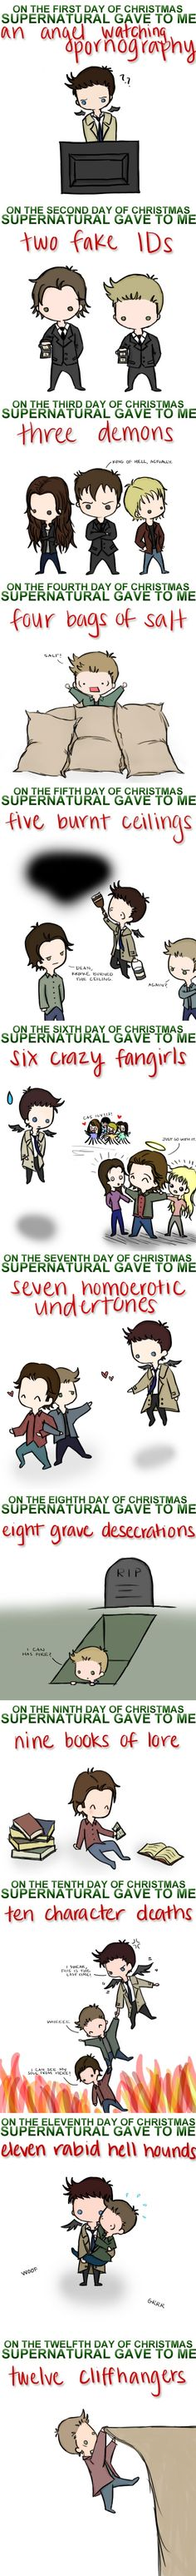 """Twelve Days of Supernatural Christmas. I love the drawings that go with it. Especially the 10 character deaths one! Lol """"I can see my soul from here!"""""""